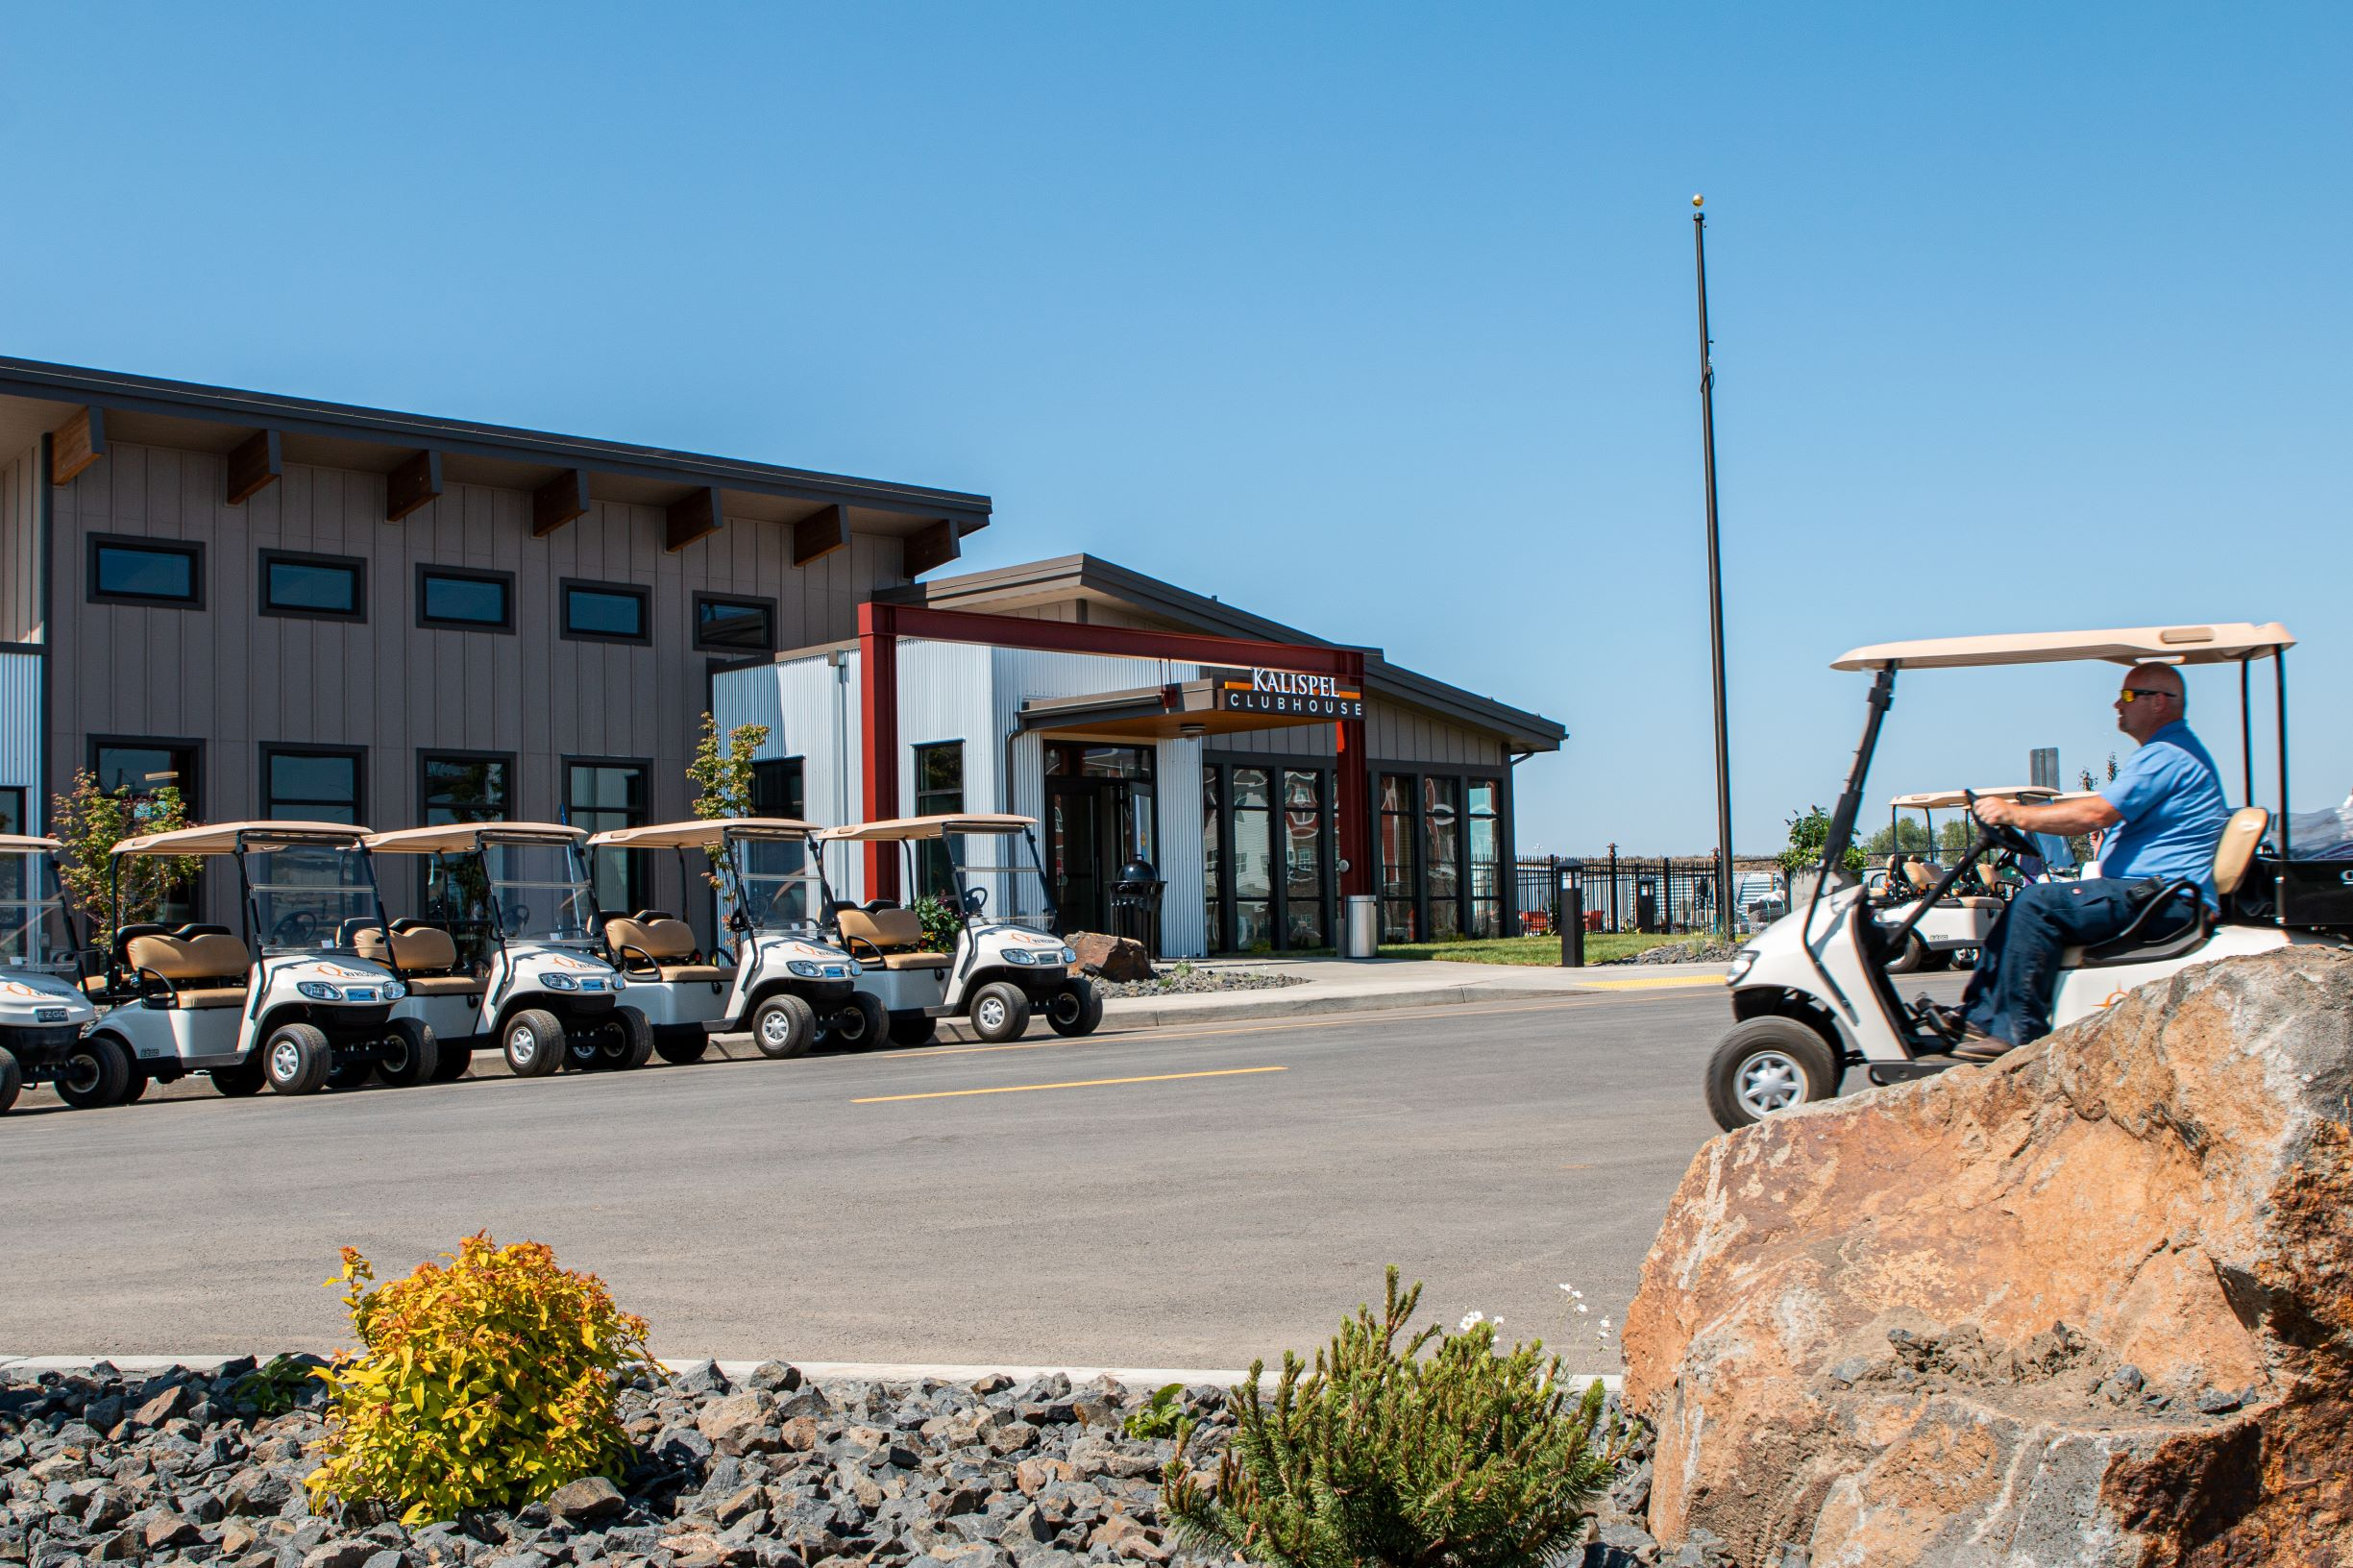 A line of golf cars parked in front of a Northern Quest building.